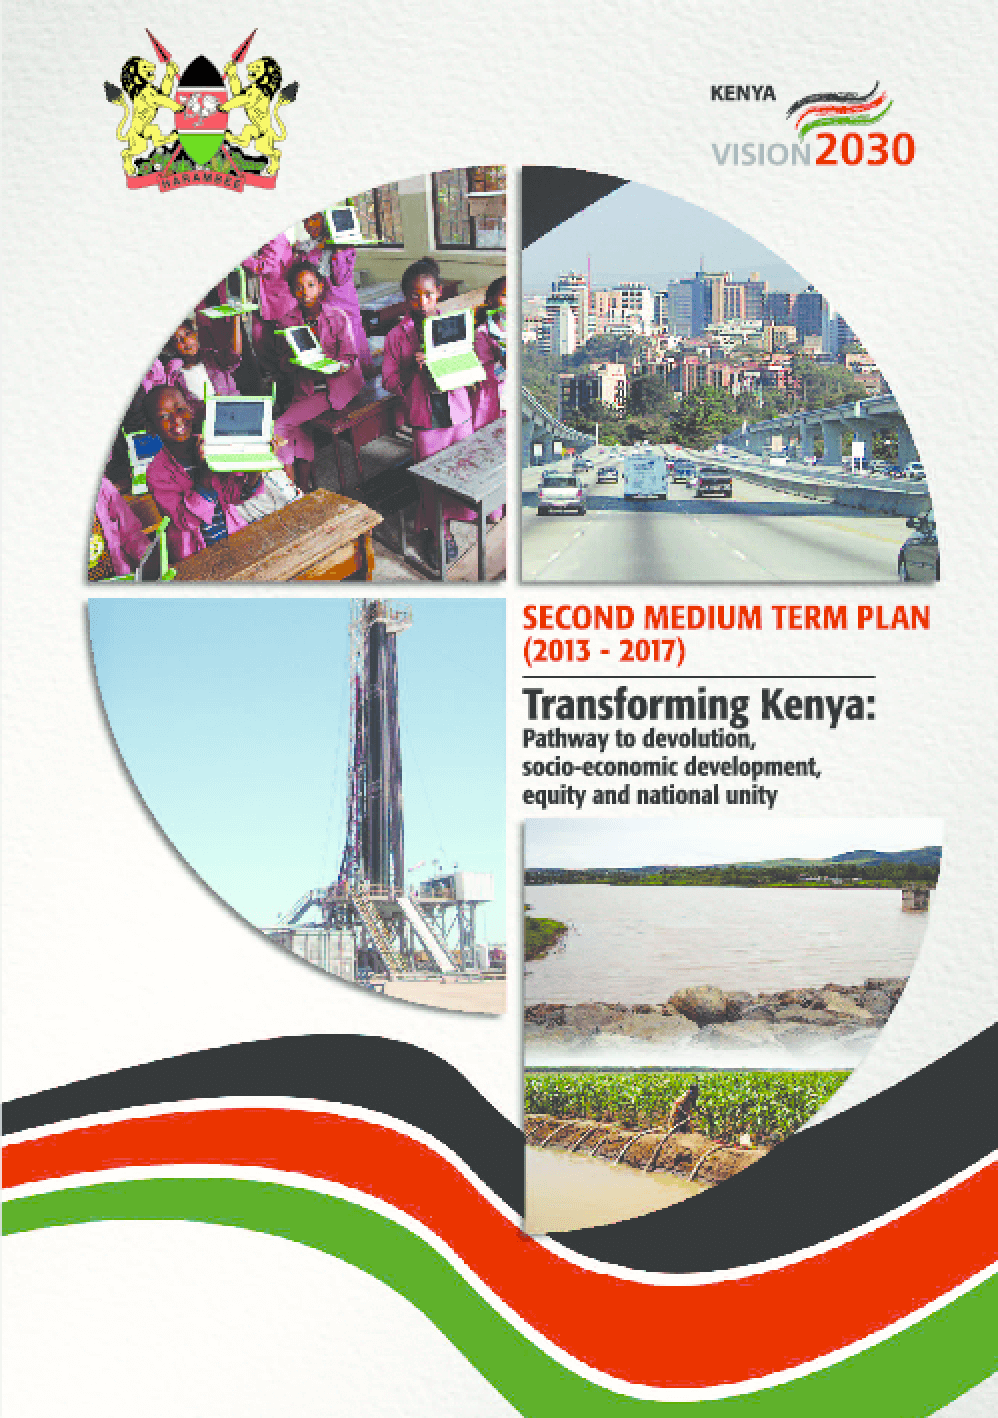 Second Medium Term Plan 2013-2017 Transforming Kenya: Pathway to Devolution, Socio-economic Development, Equity and National Unity